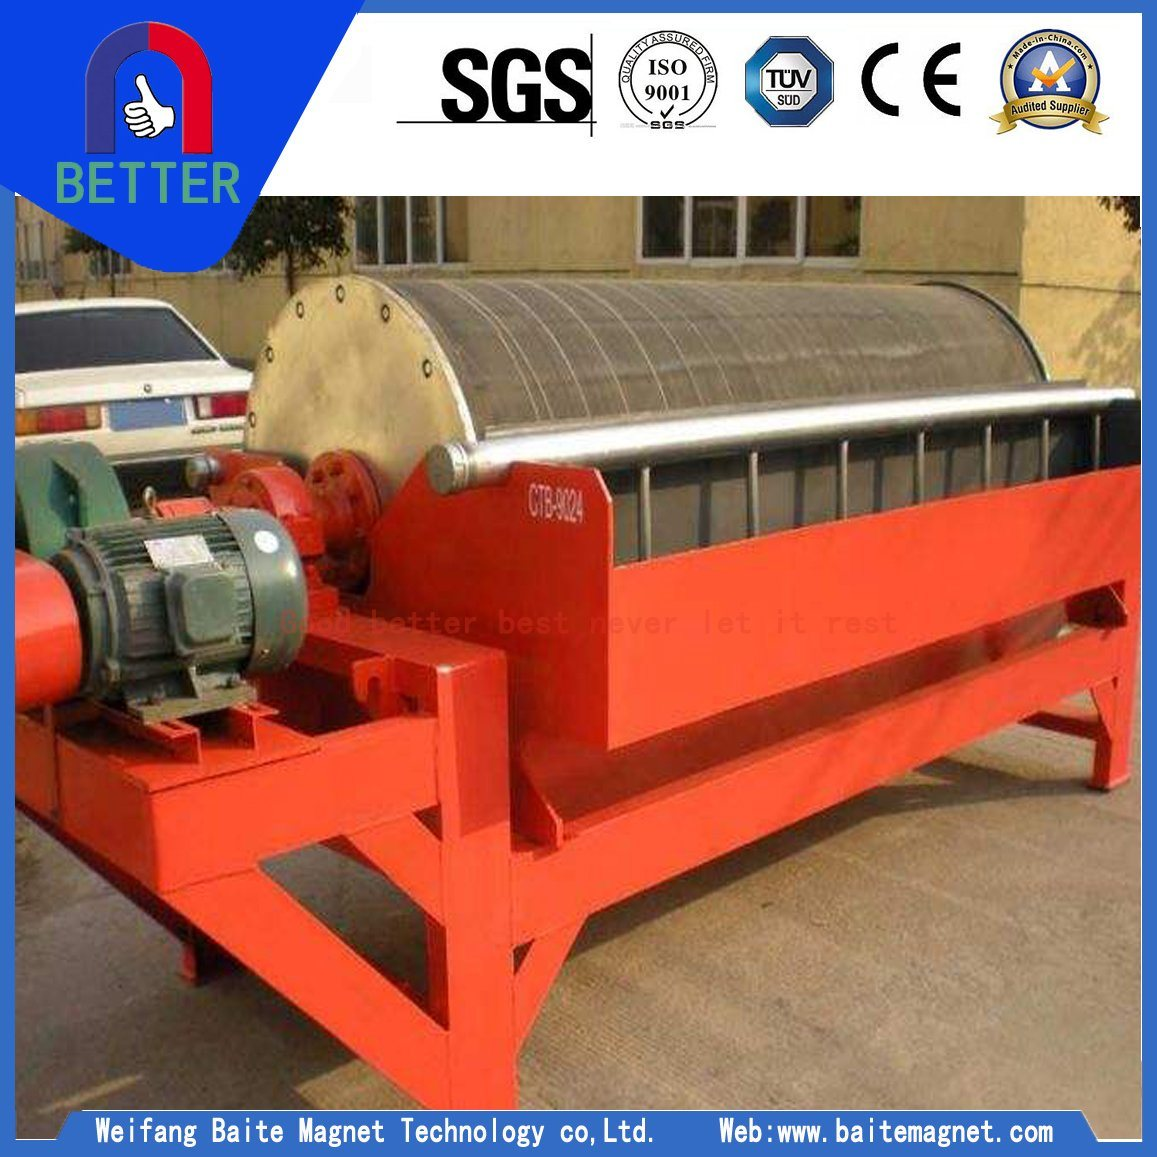 Automatic Sea River Sand Magnetic Separator Fot Iron Sea Sand Processing